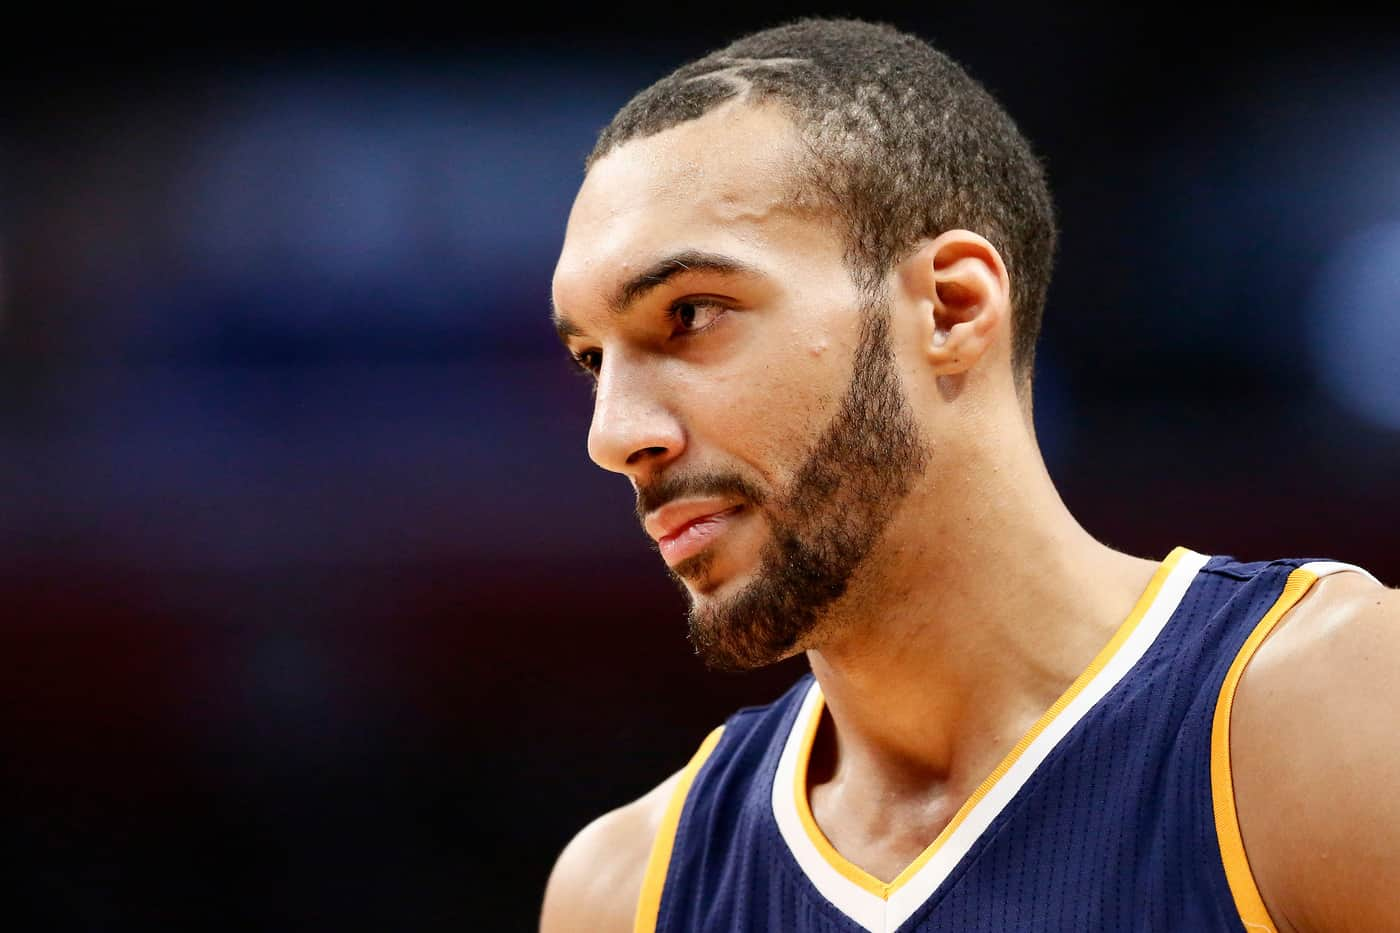 Rudy Gobert bosse son shoot à 3 points